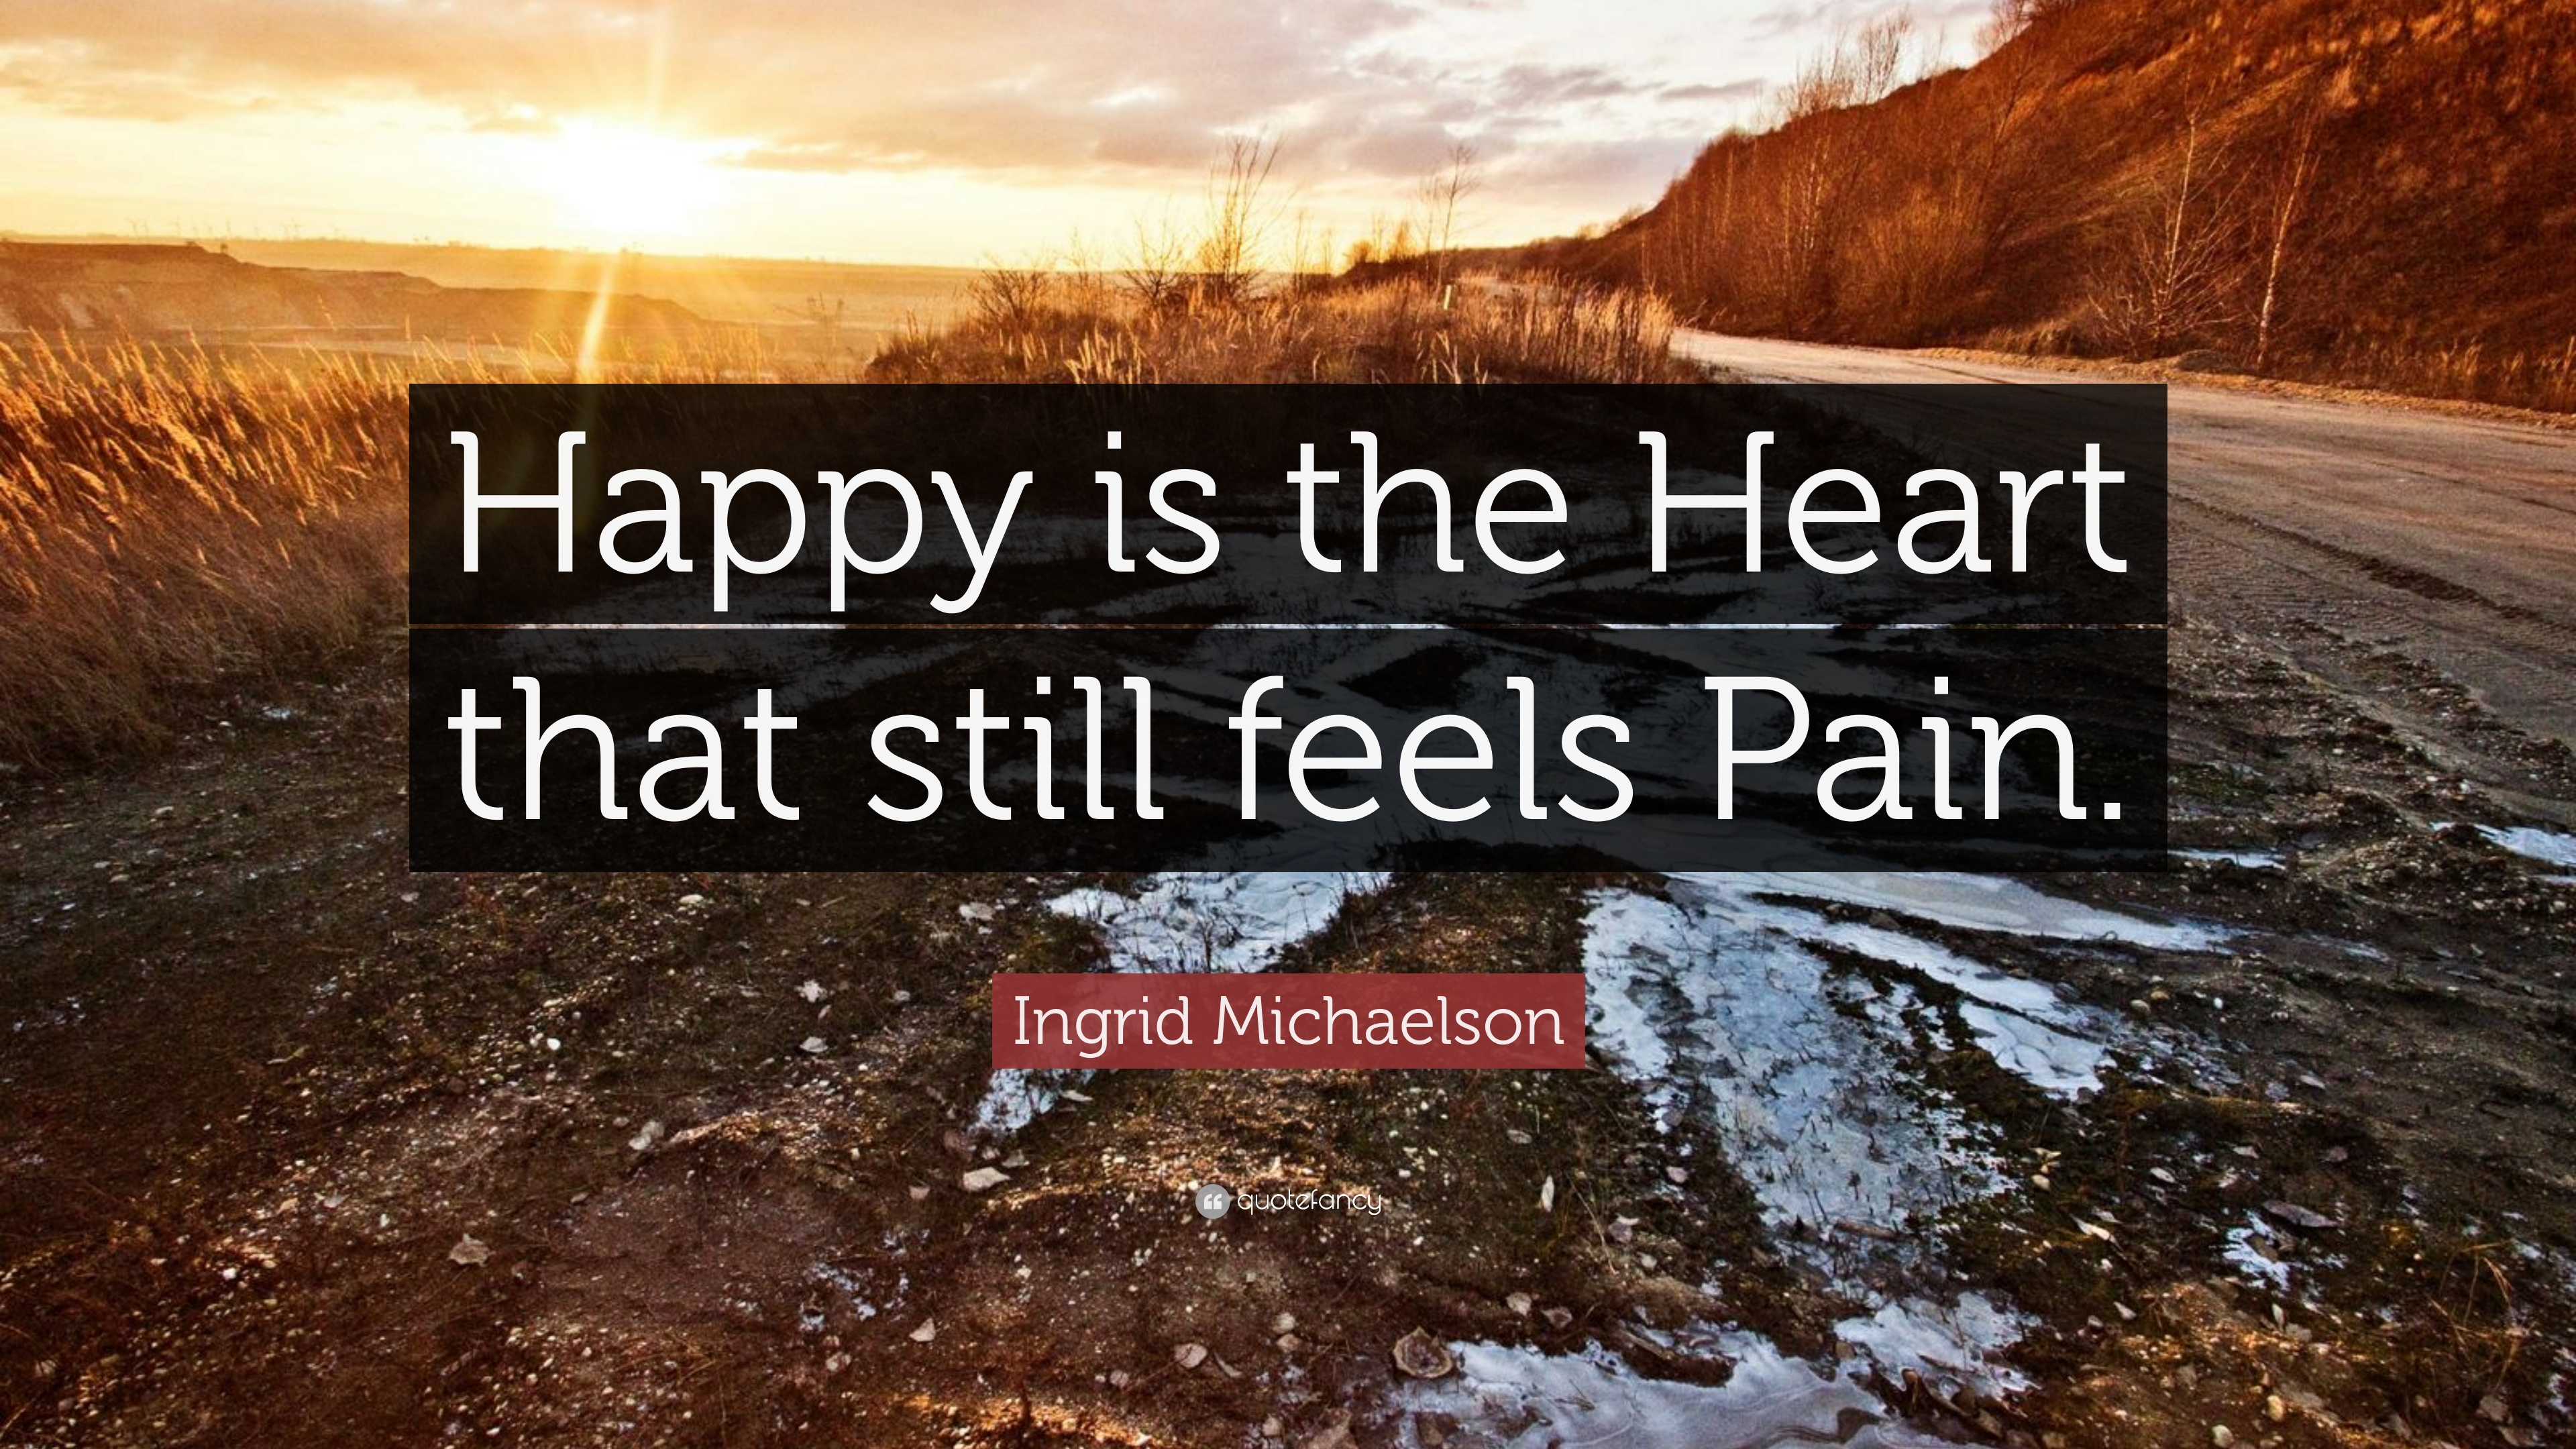 Happy is the heart that still feels pain